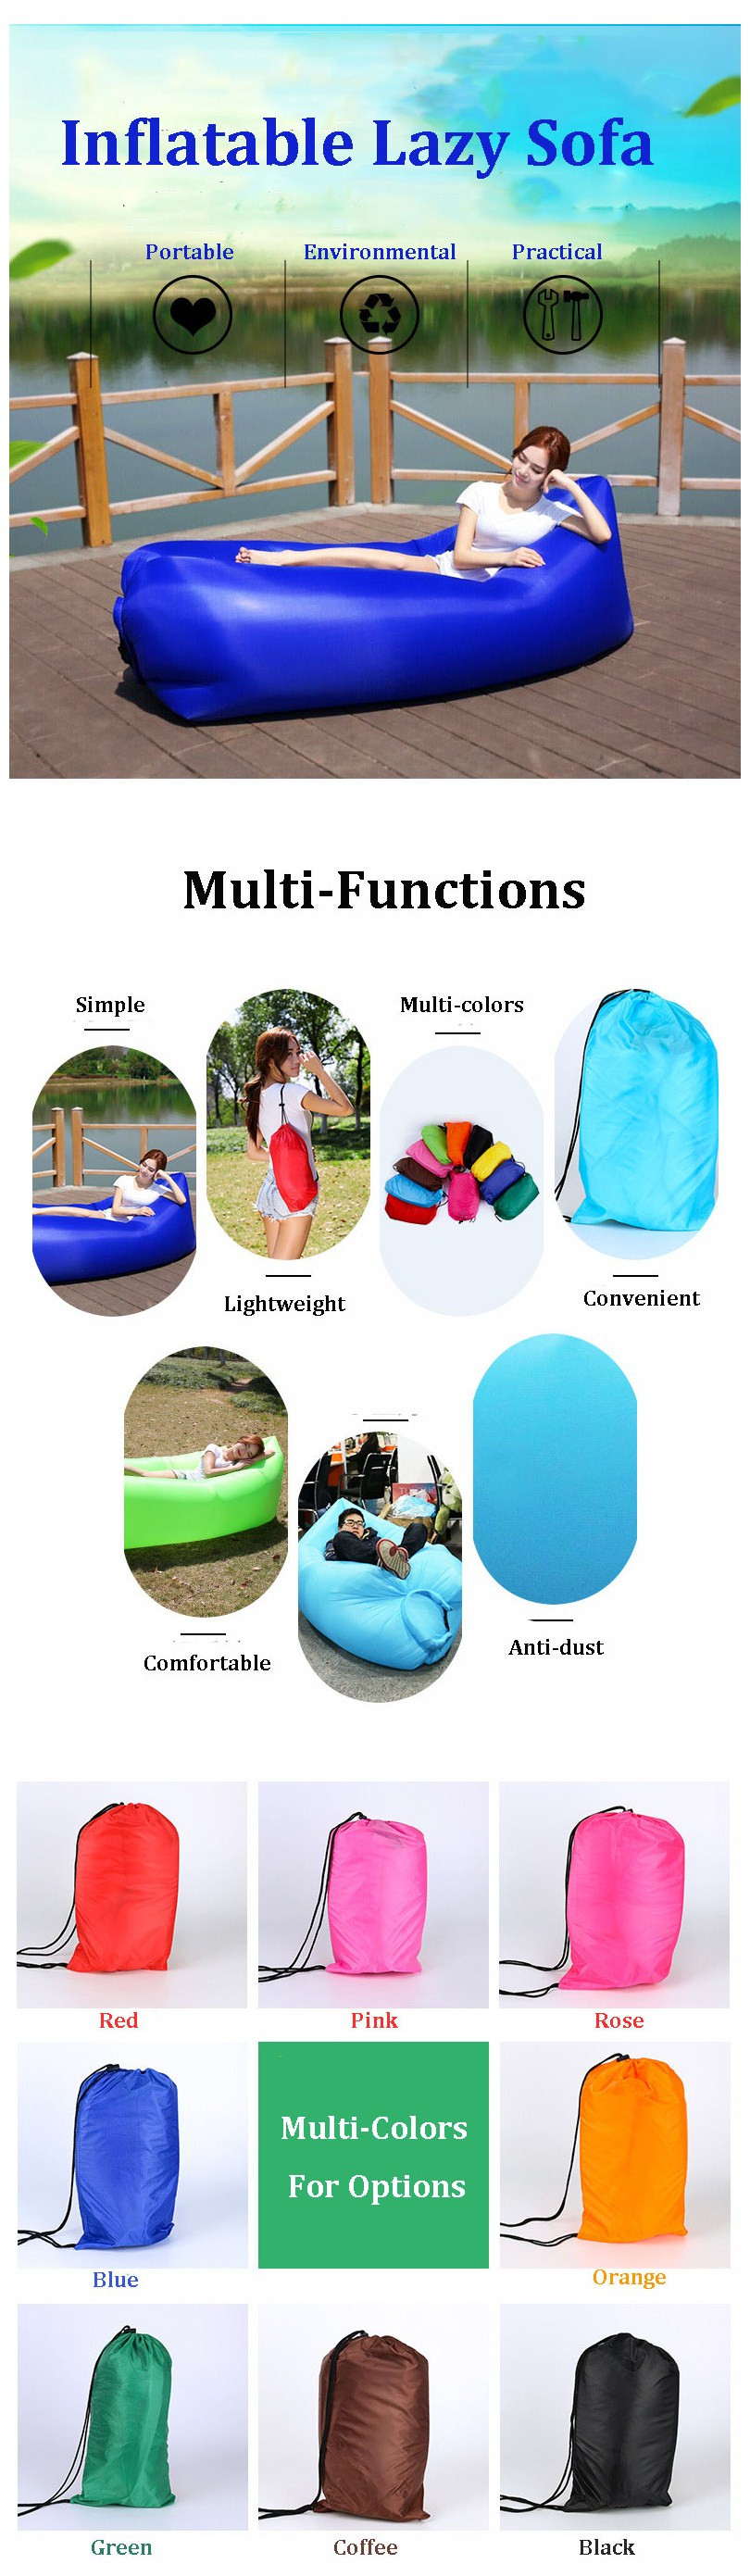 IPRee™ Outdoor Travel Square-Headed Lazy Sofa Fast Air Inflatable Sleeping Bed Lounger Camping Beach Lay Bag